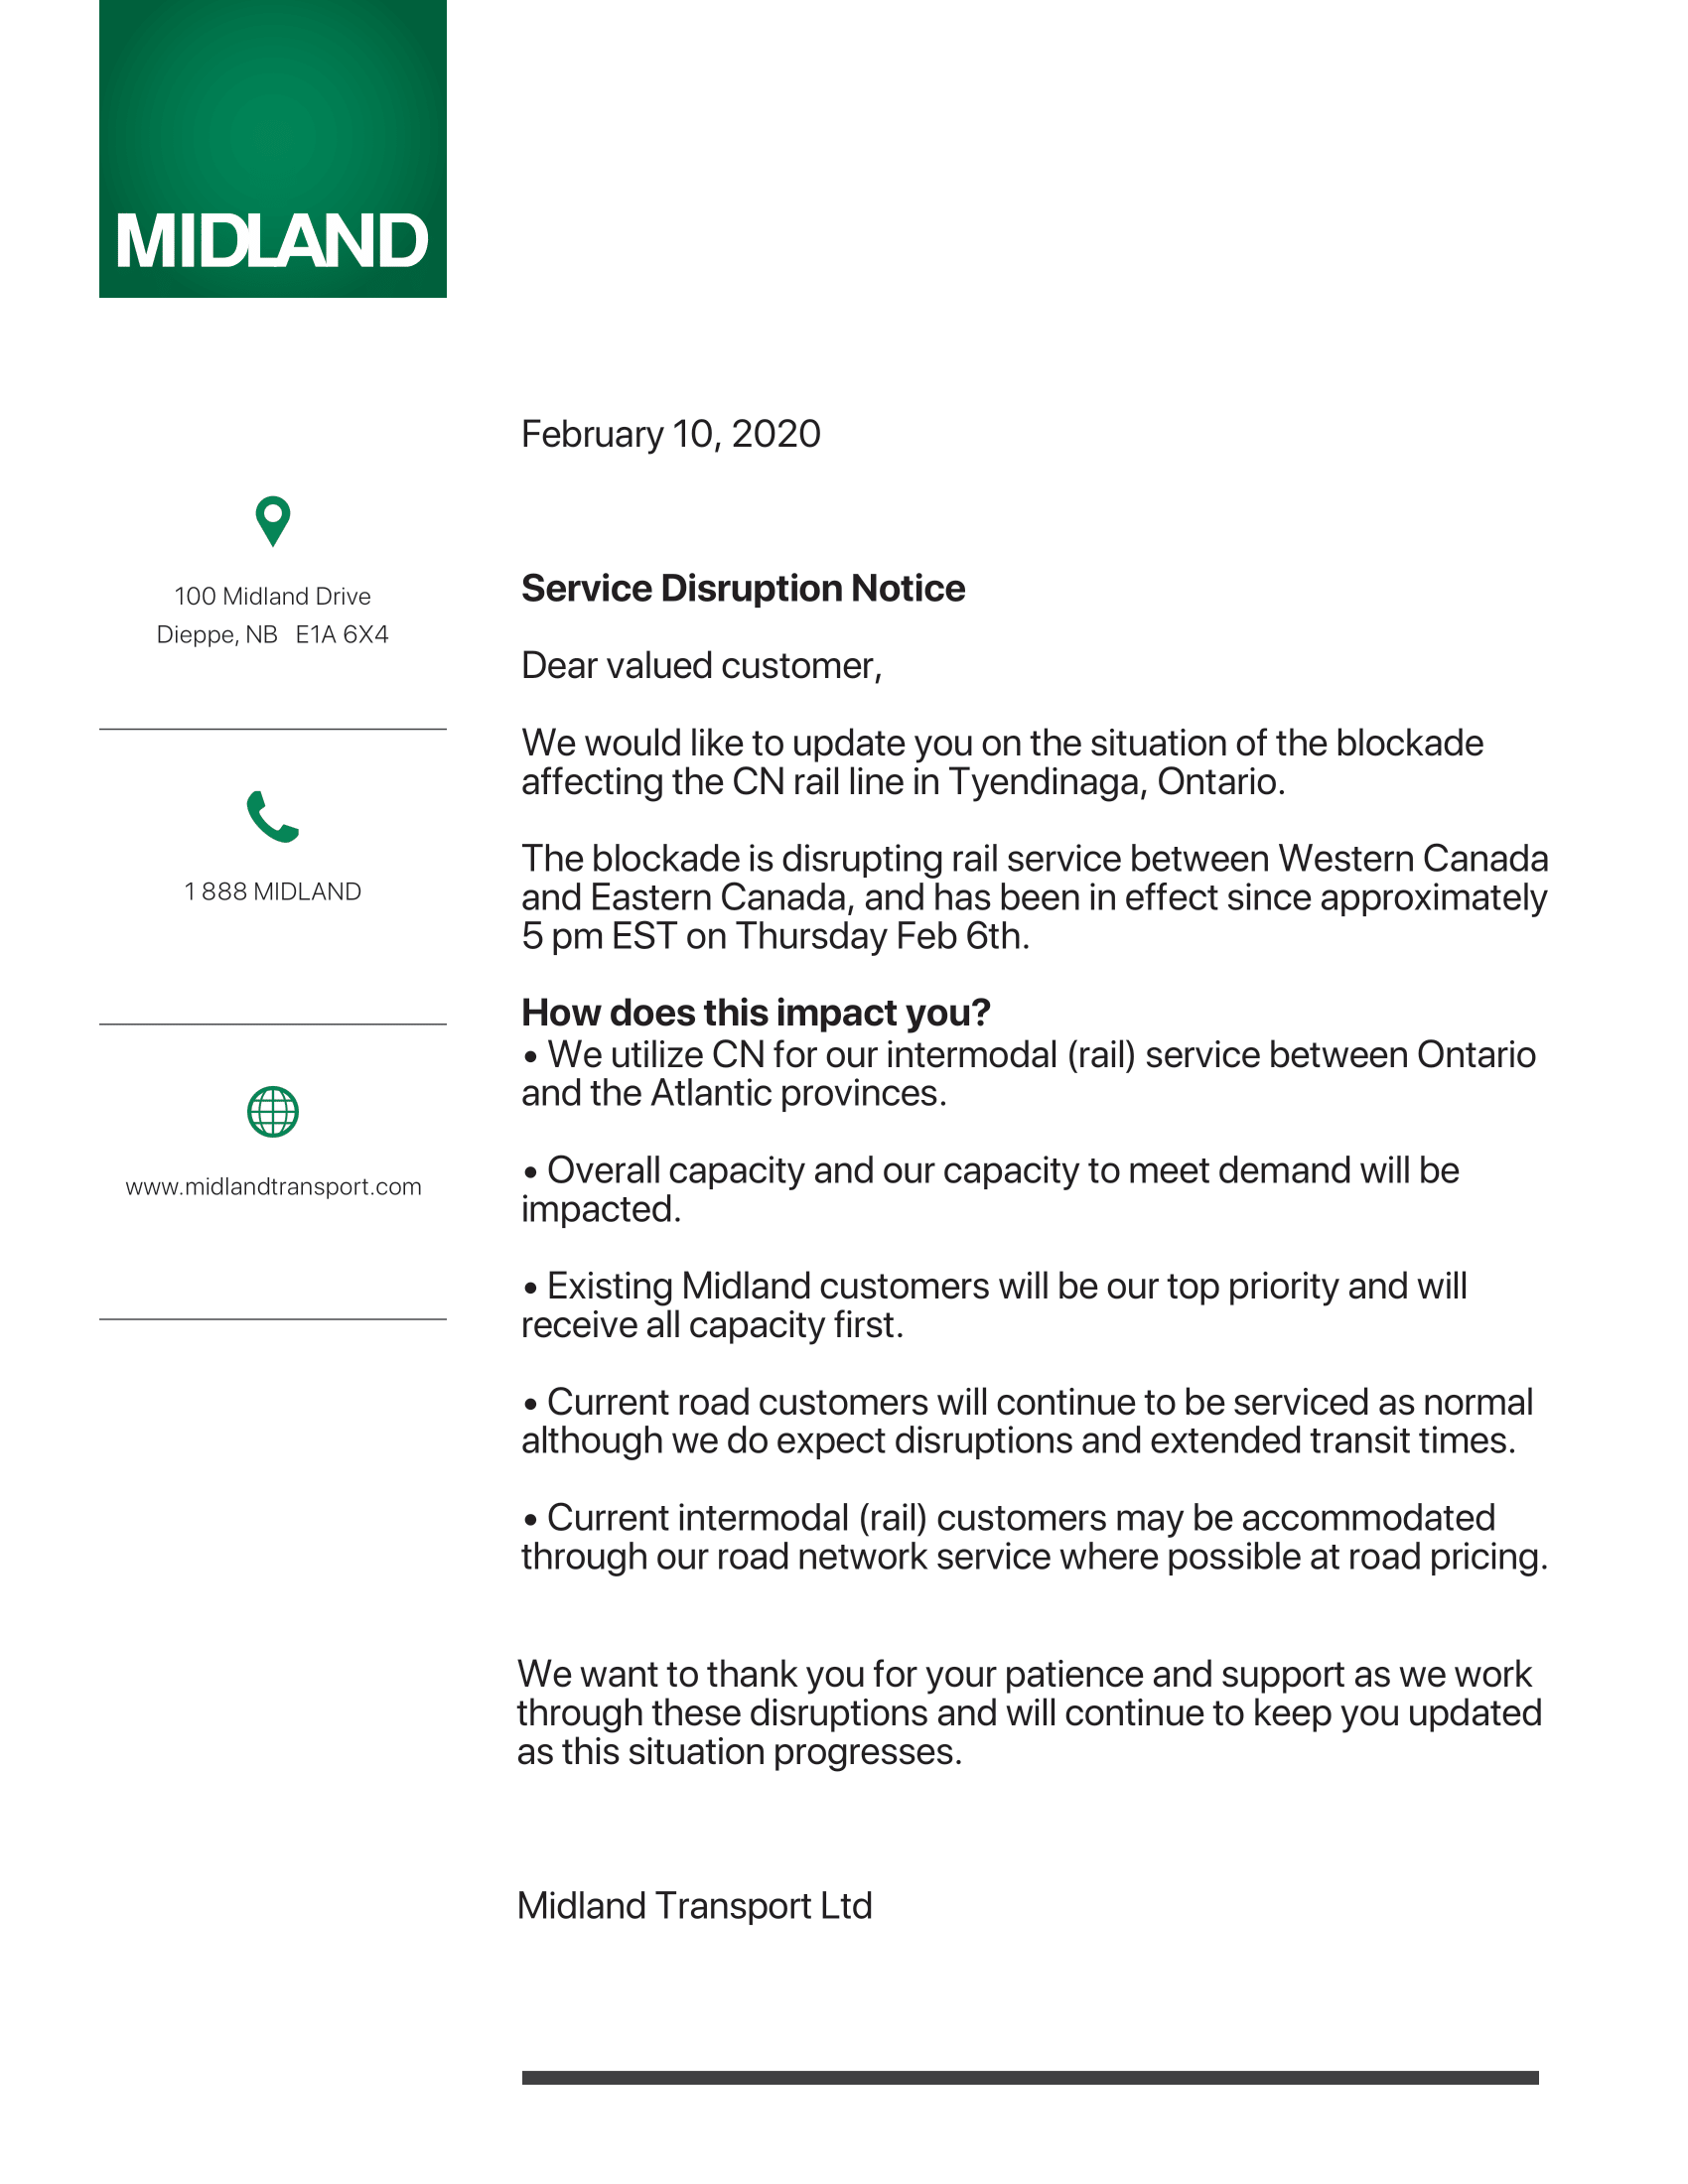 CN Potential Service Disruption_Feb10_2020-1